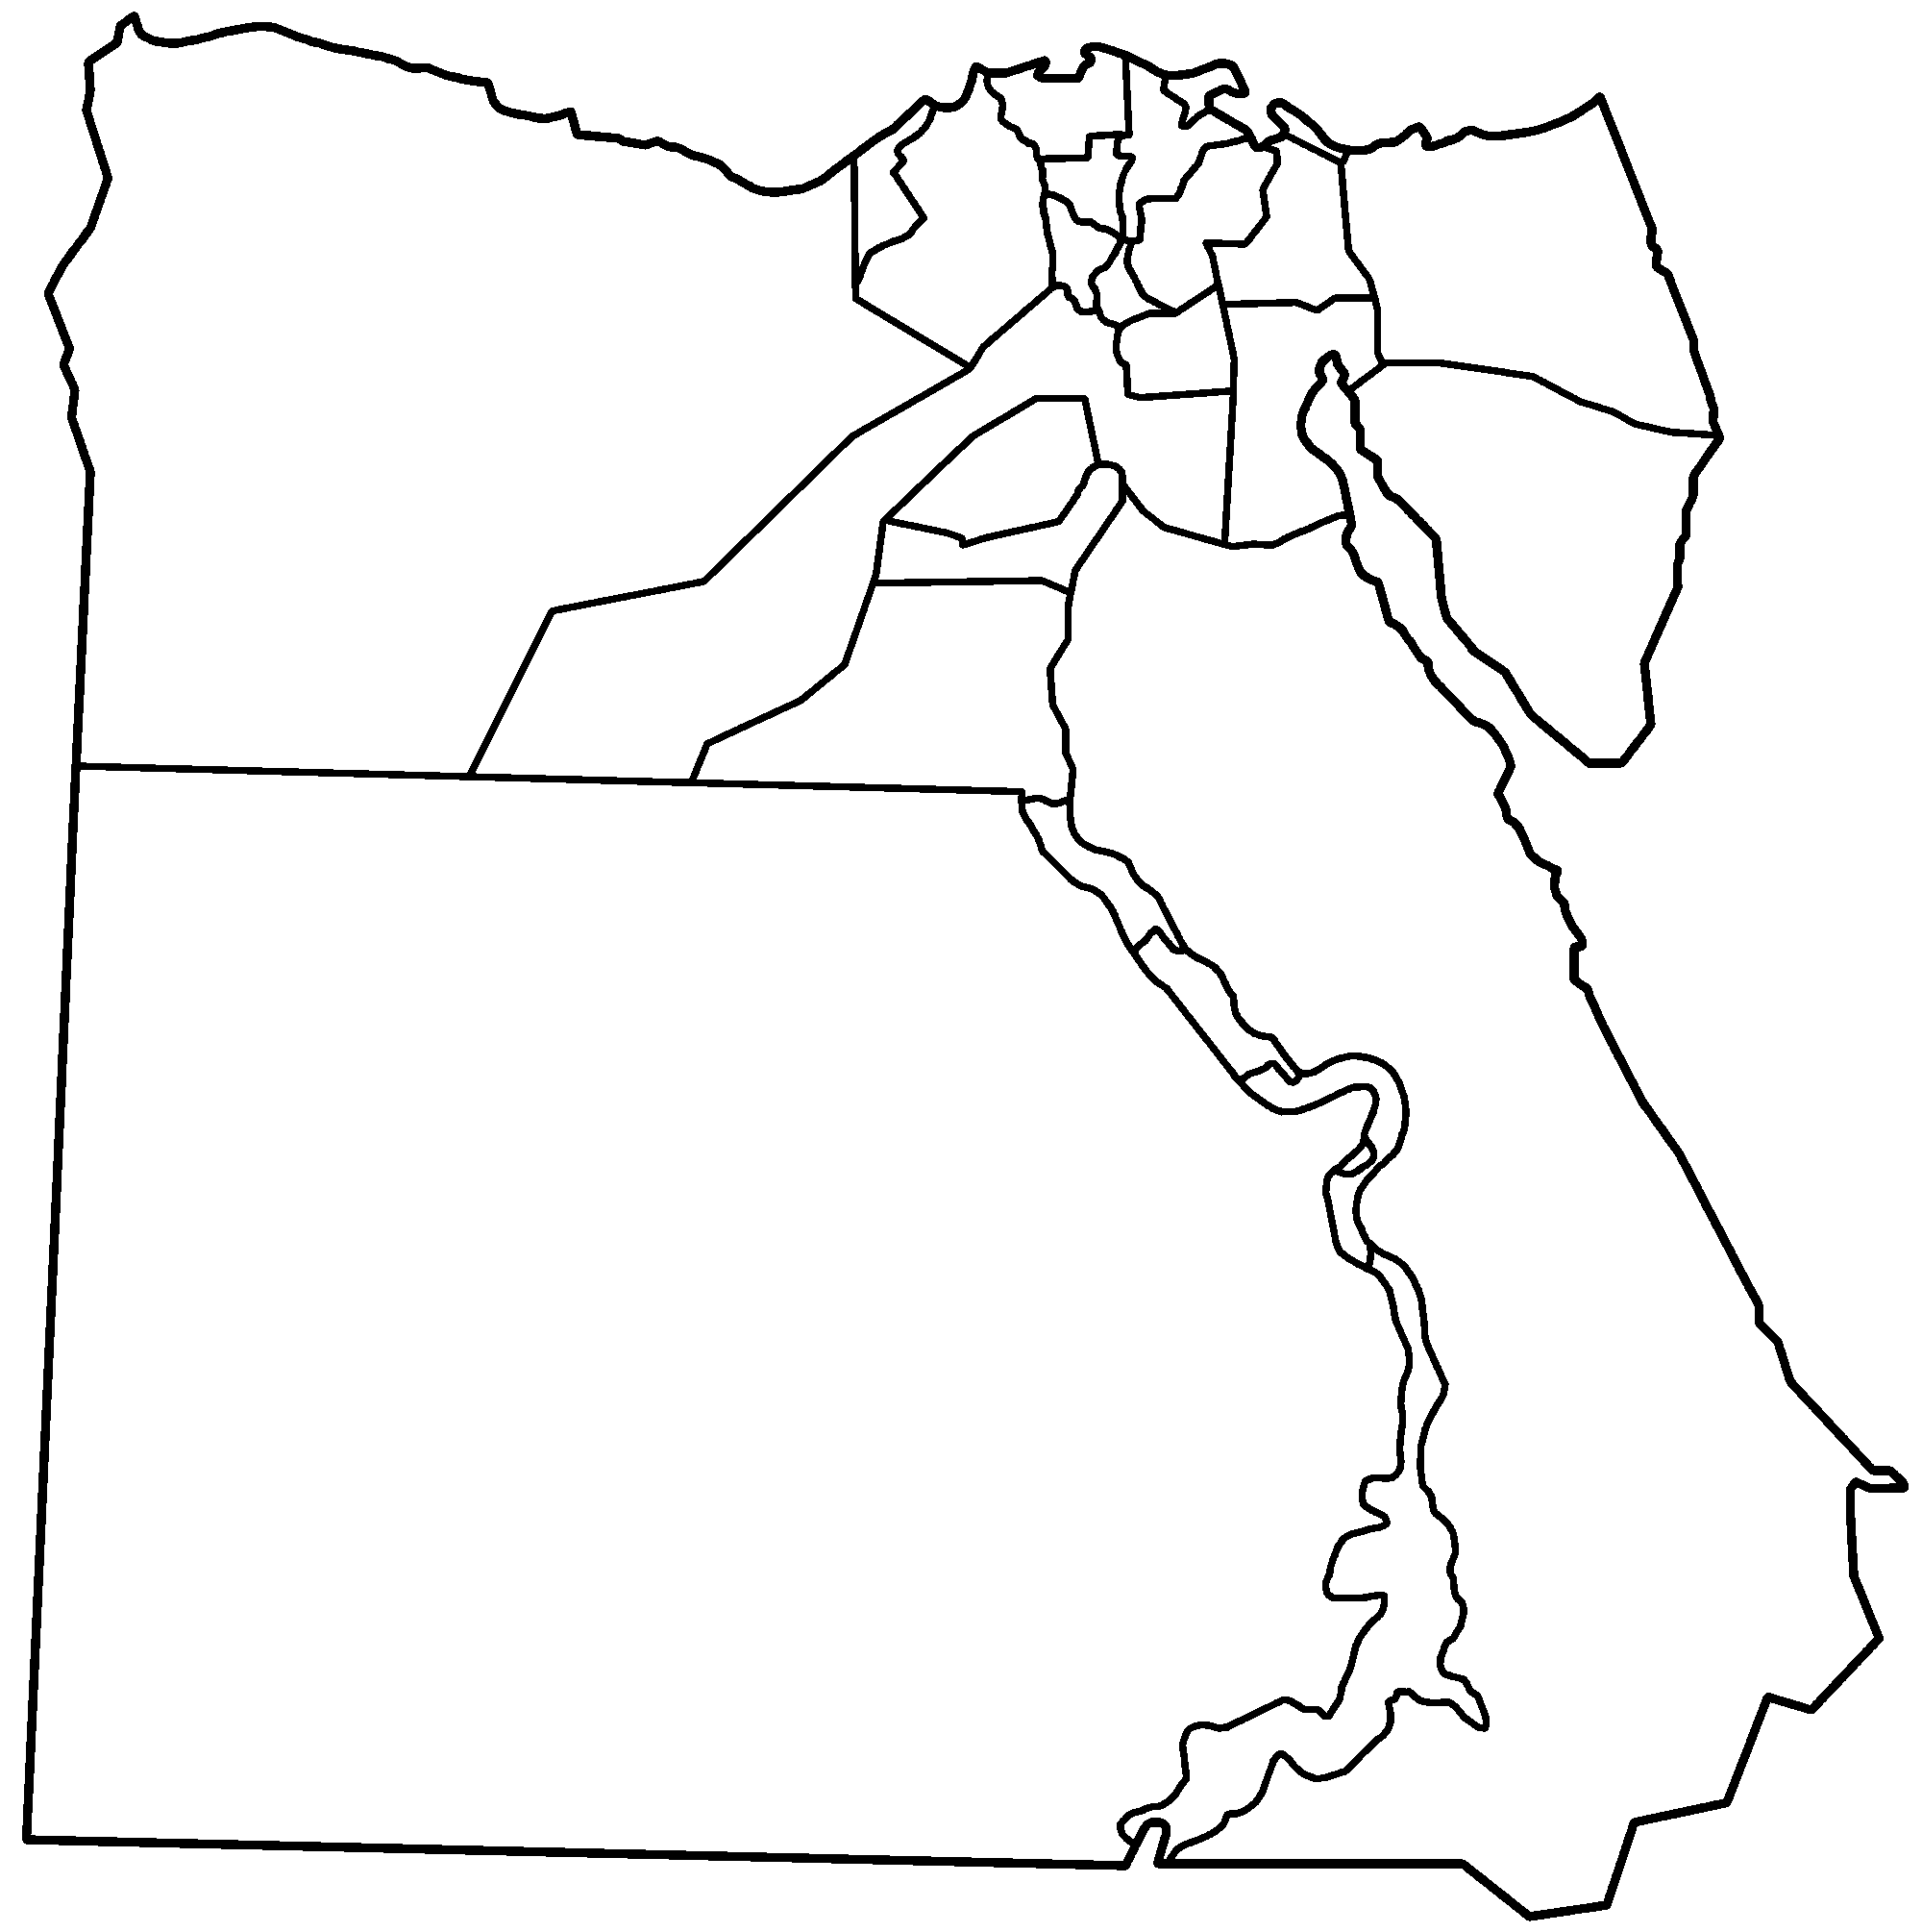 Savage drawing outline. Egypt map at getdrawings